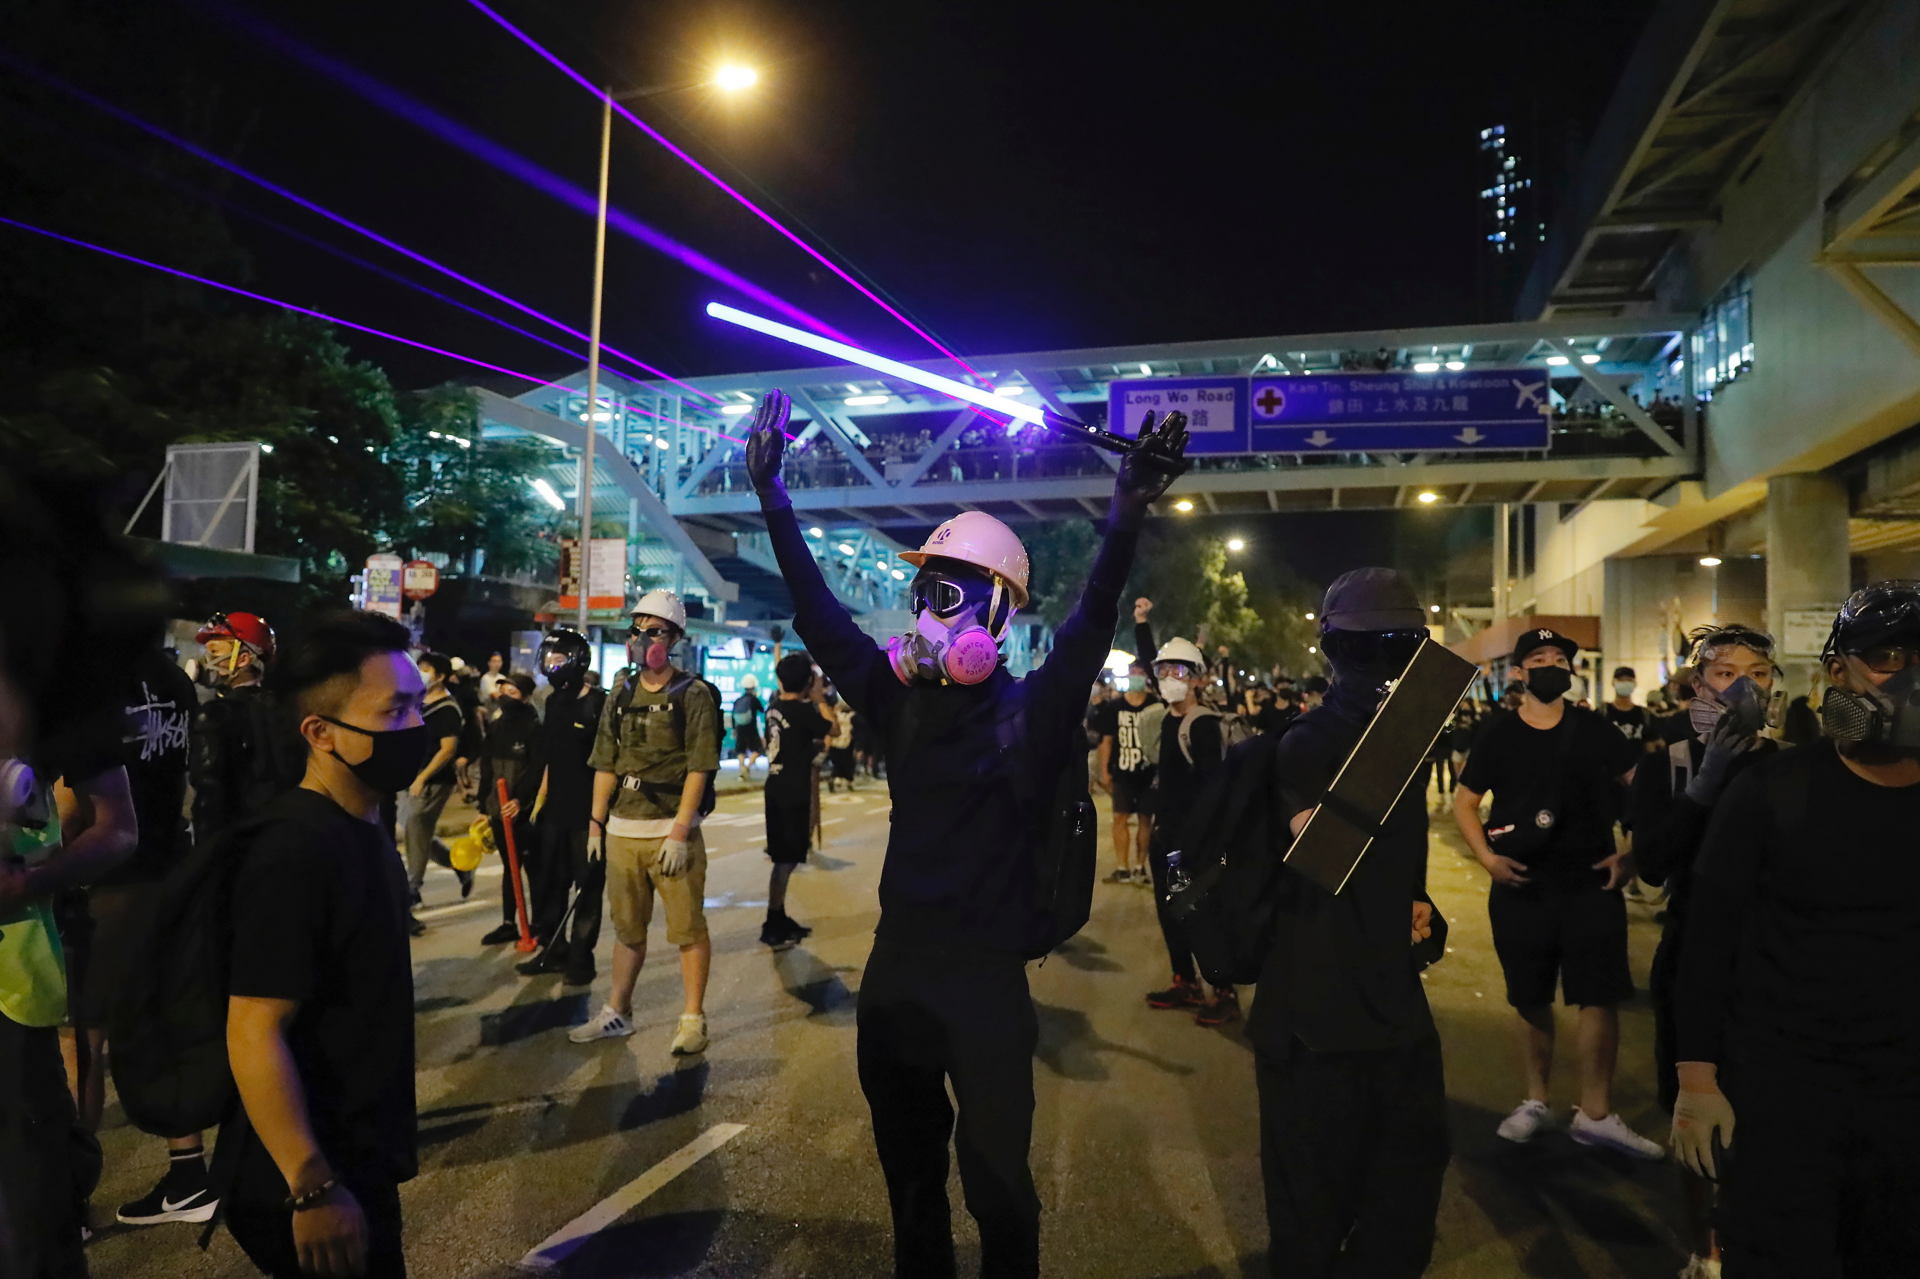 Westlake Legal Group ContentBroker_contentid-4606b123a20645e7944e4ceacbfb0057 Train to Hong Kong airport suspended after violent protests fox-news/world/world-regions/hong-kong fox-news/world/world-regions/china fnc/world fnc Associated Press article 7940e67a-8fc0-5b32-96b9-e12915ed9817